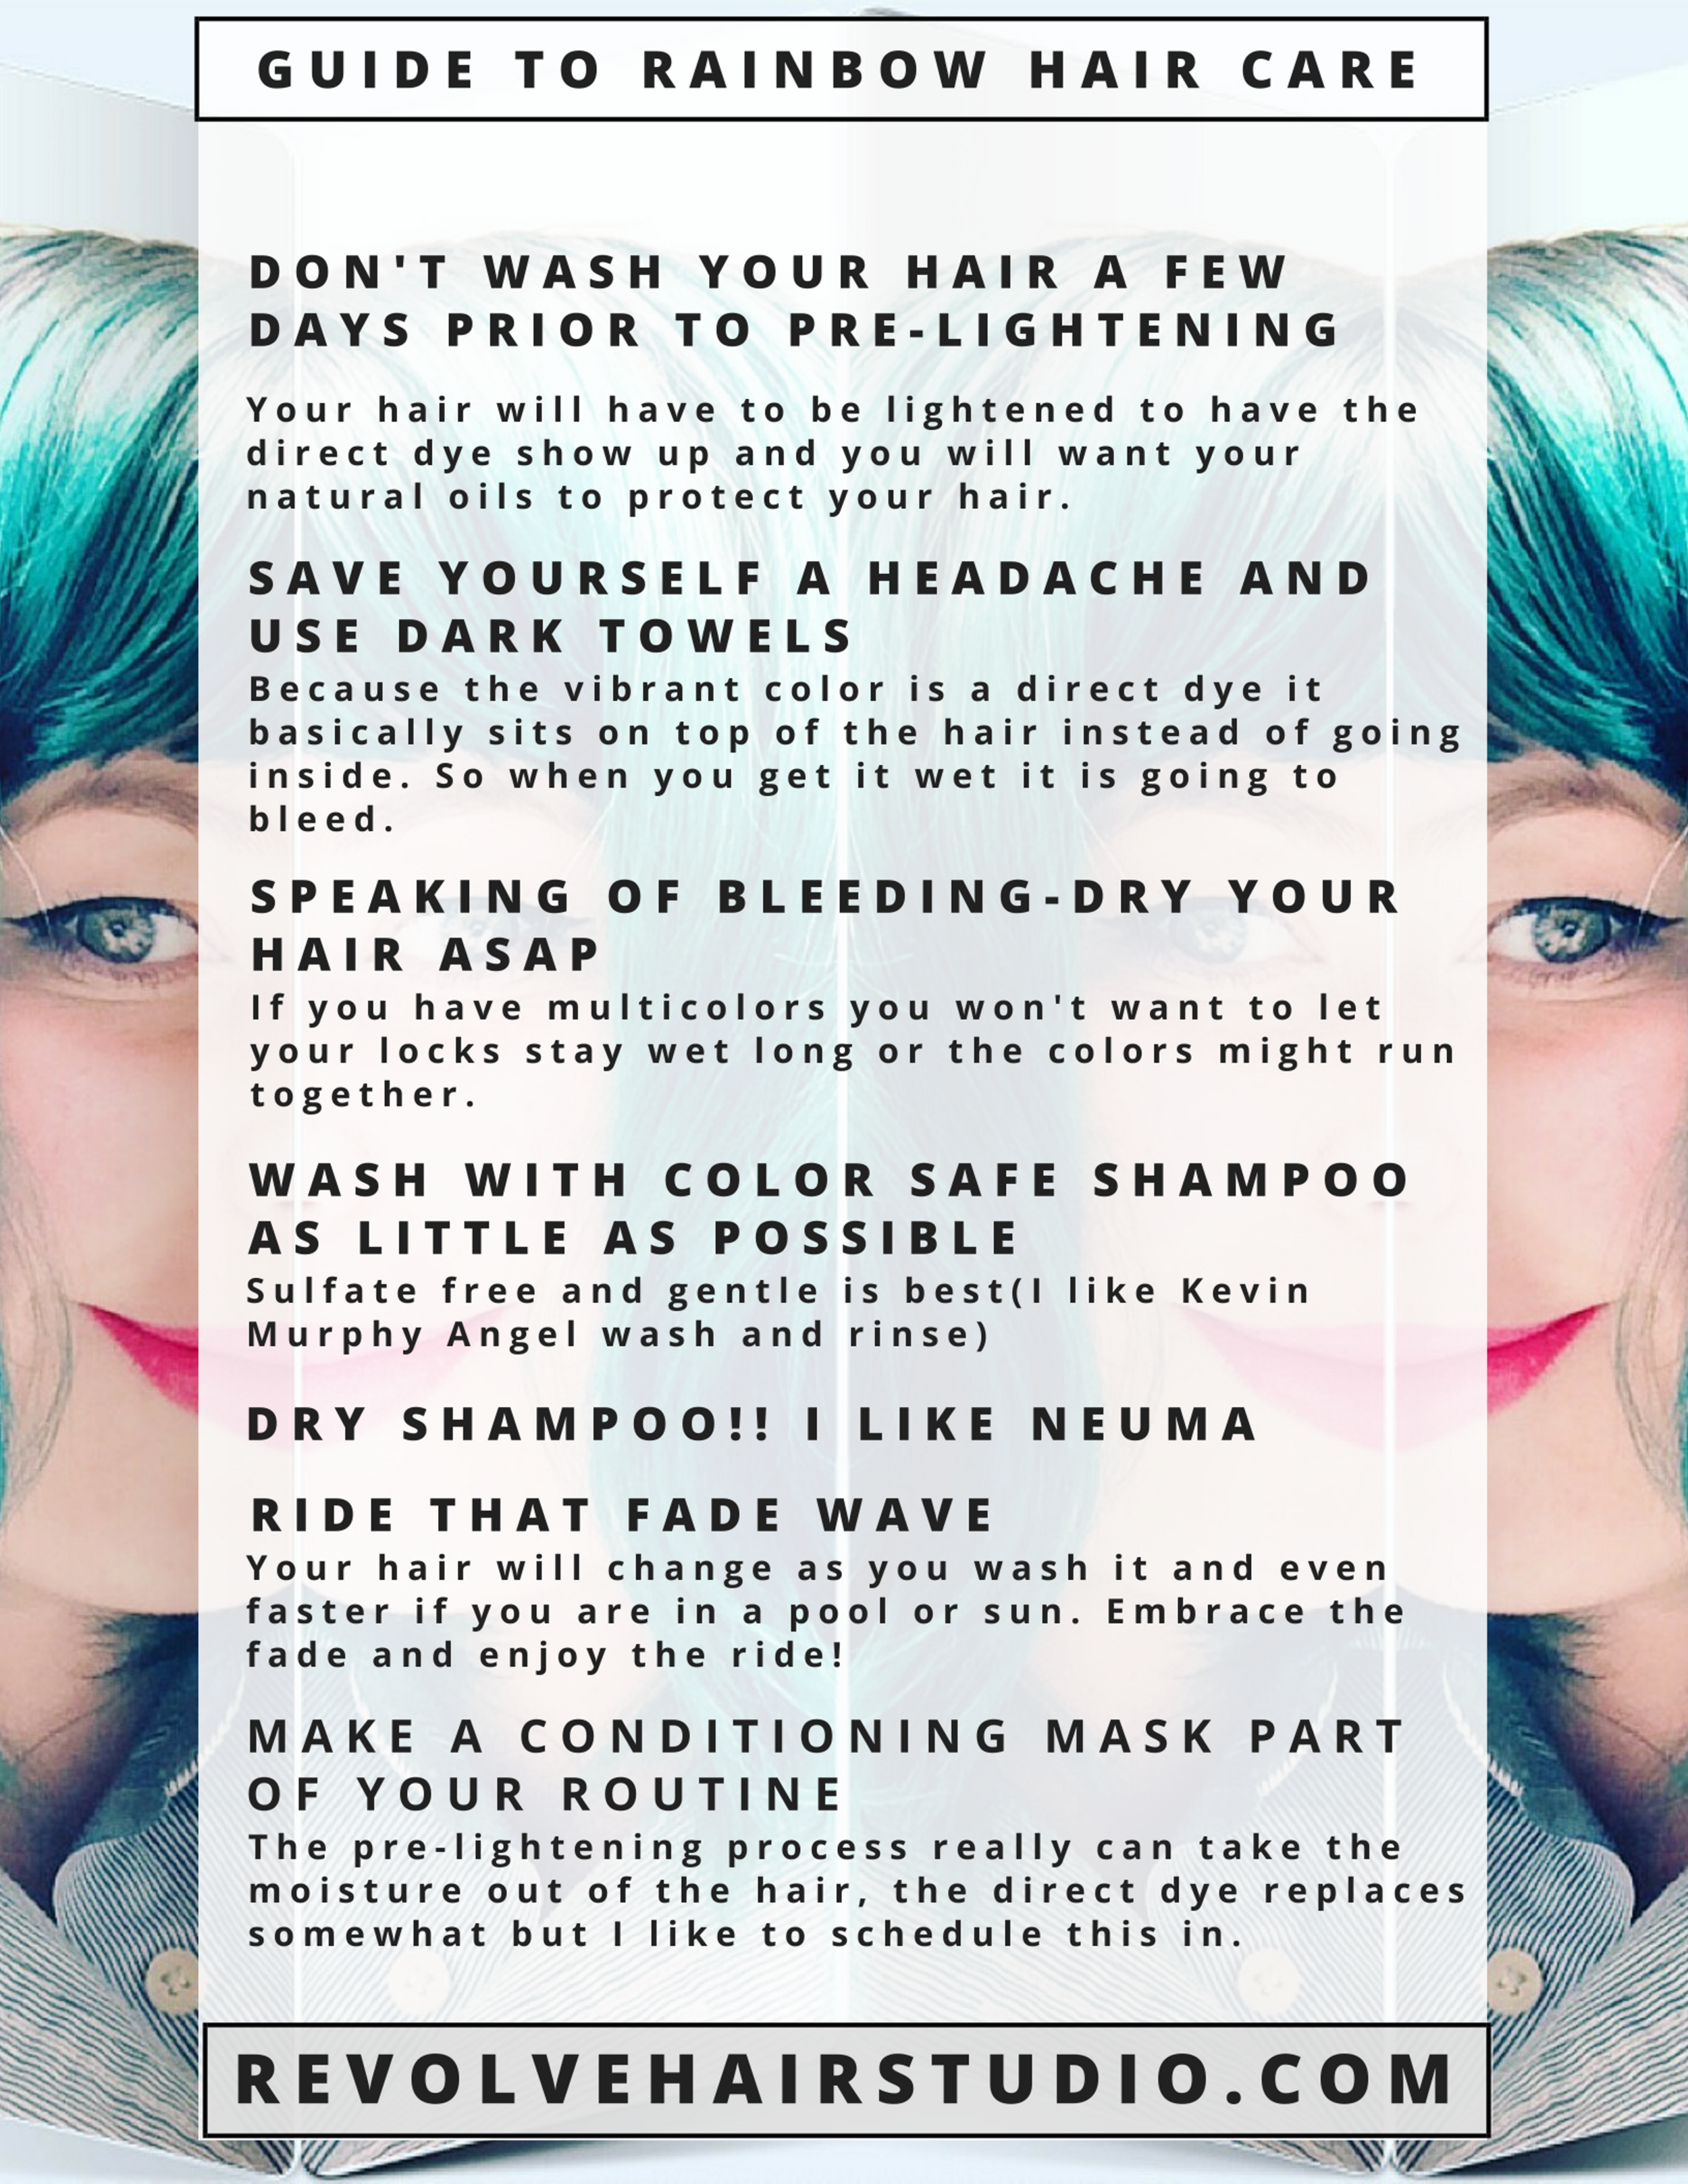 GUIDE TO RAINBOW HAIR CARE.png